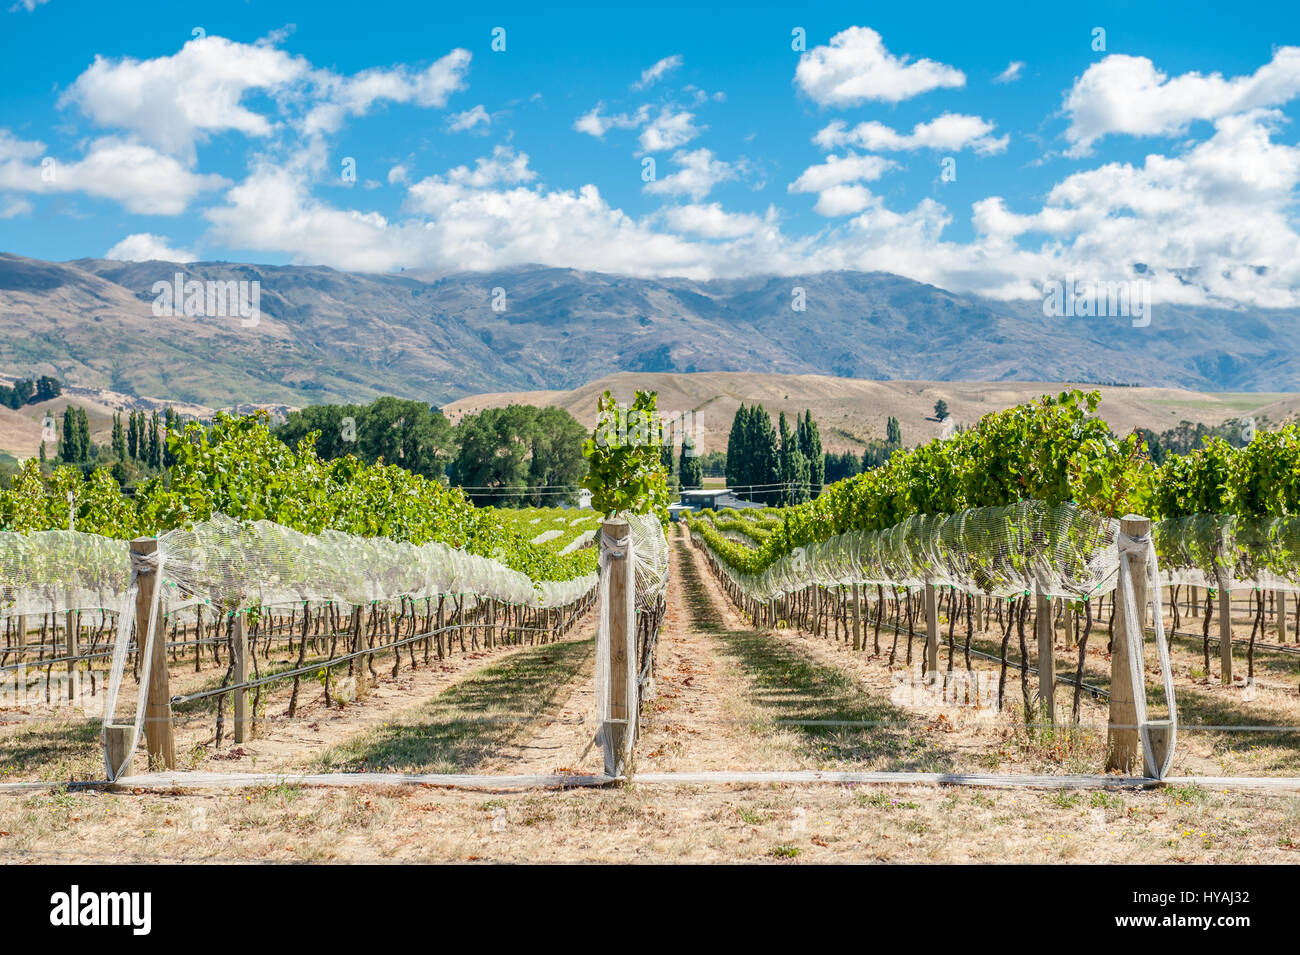 Vineyard in Gibbston Valley, New Zealand. Central Otago is the southernmost wine region in the world and mostly - Stock Image